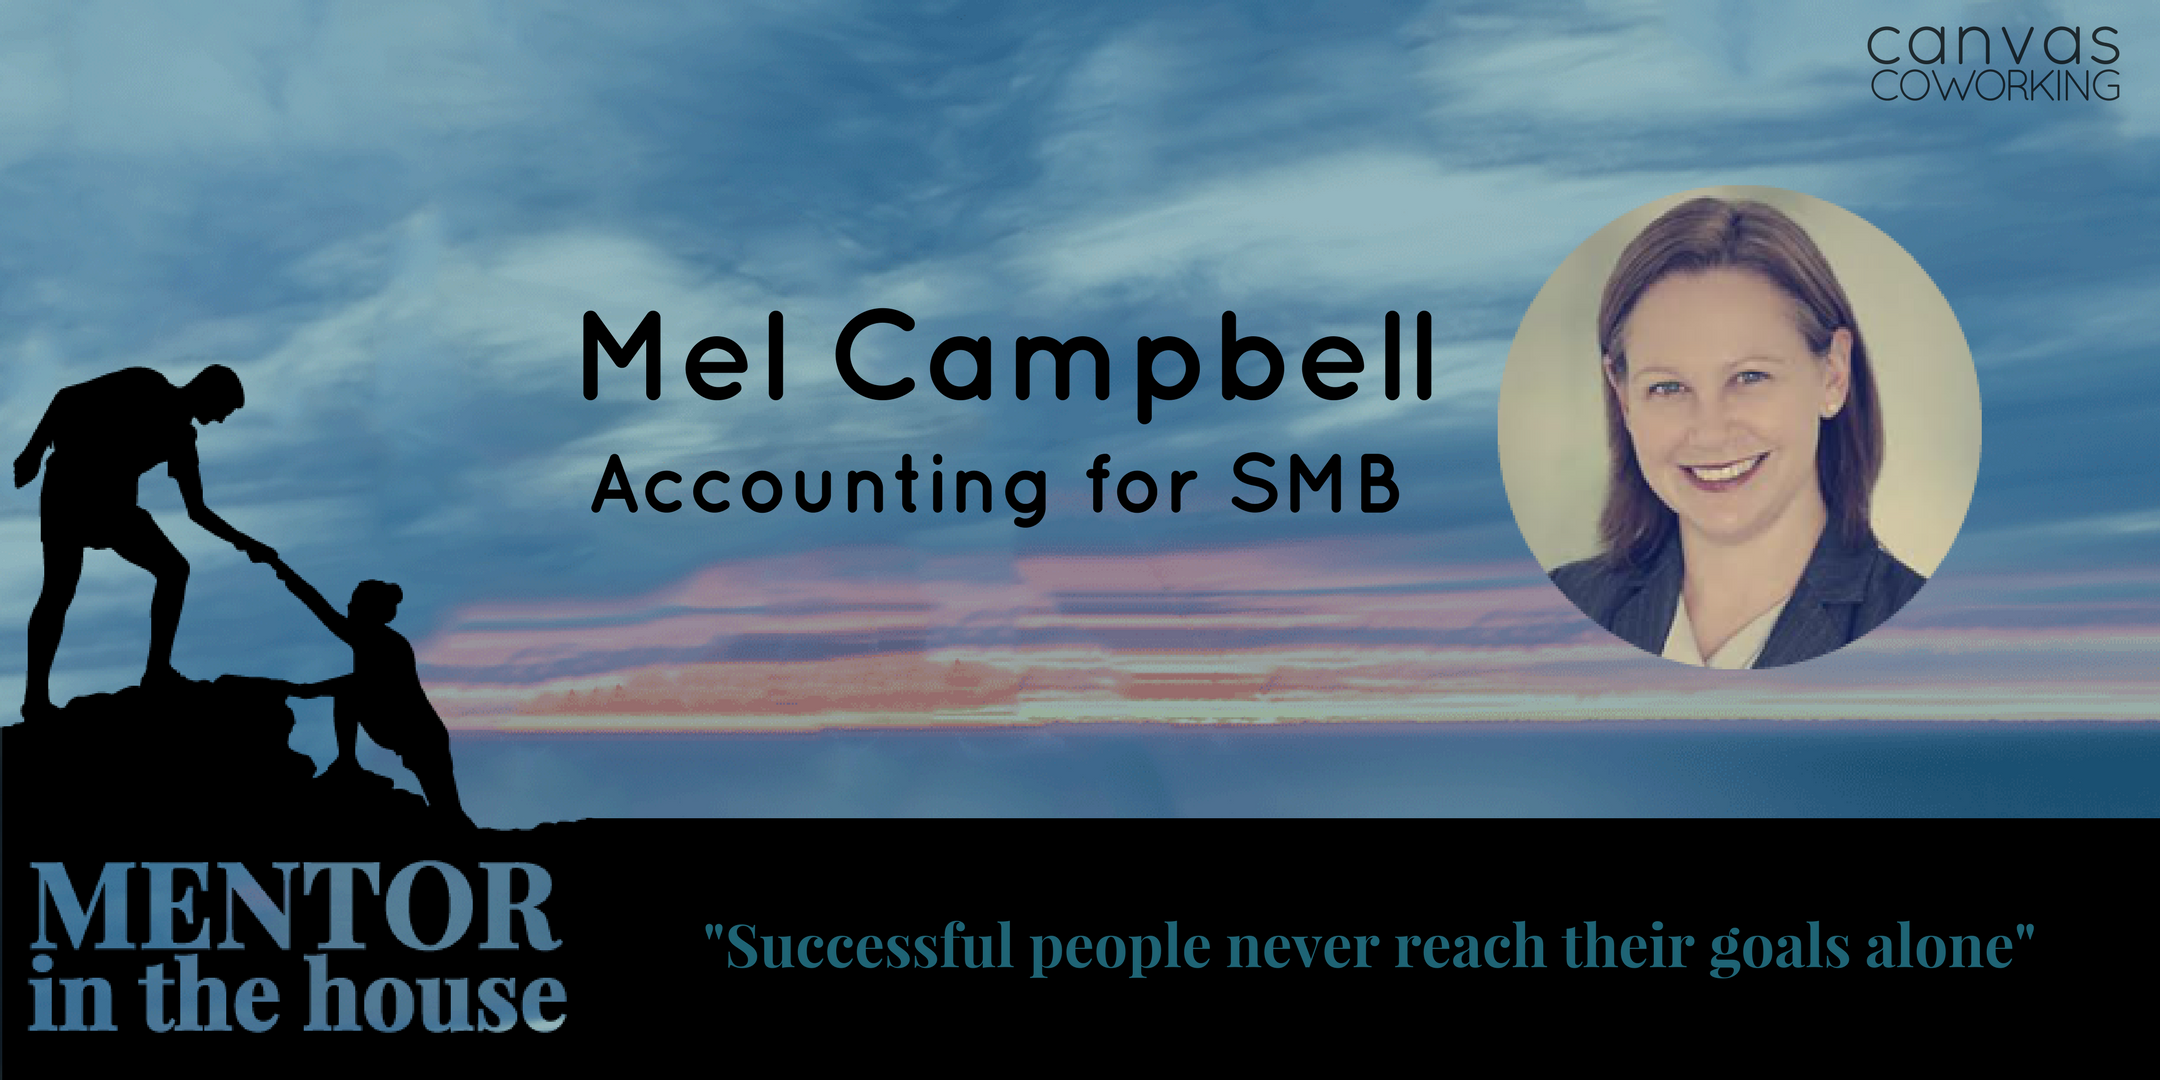 Mentor in the house - Mel Campbell - Accounting